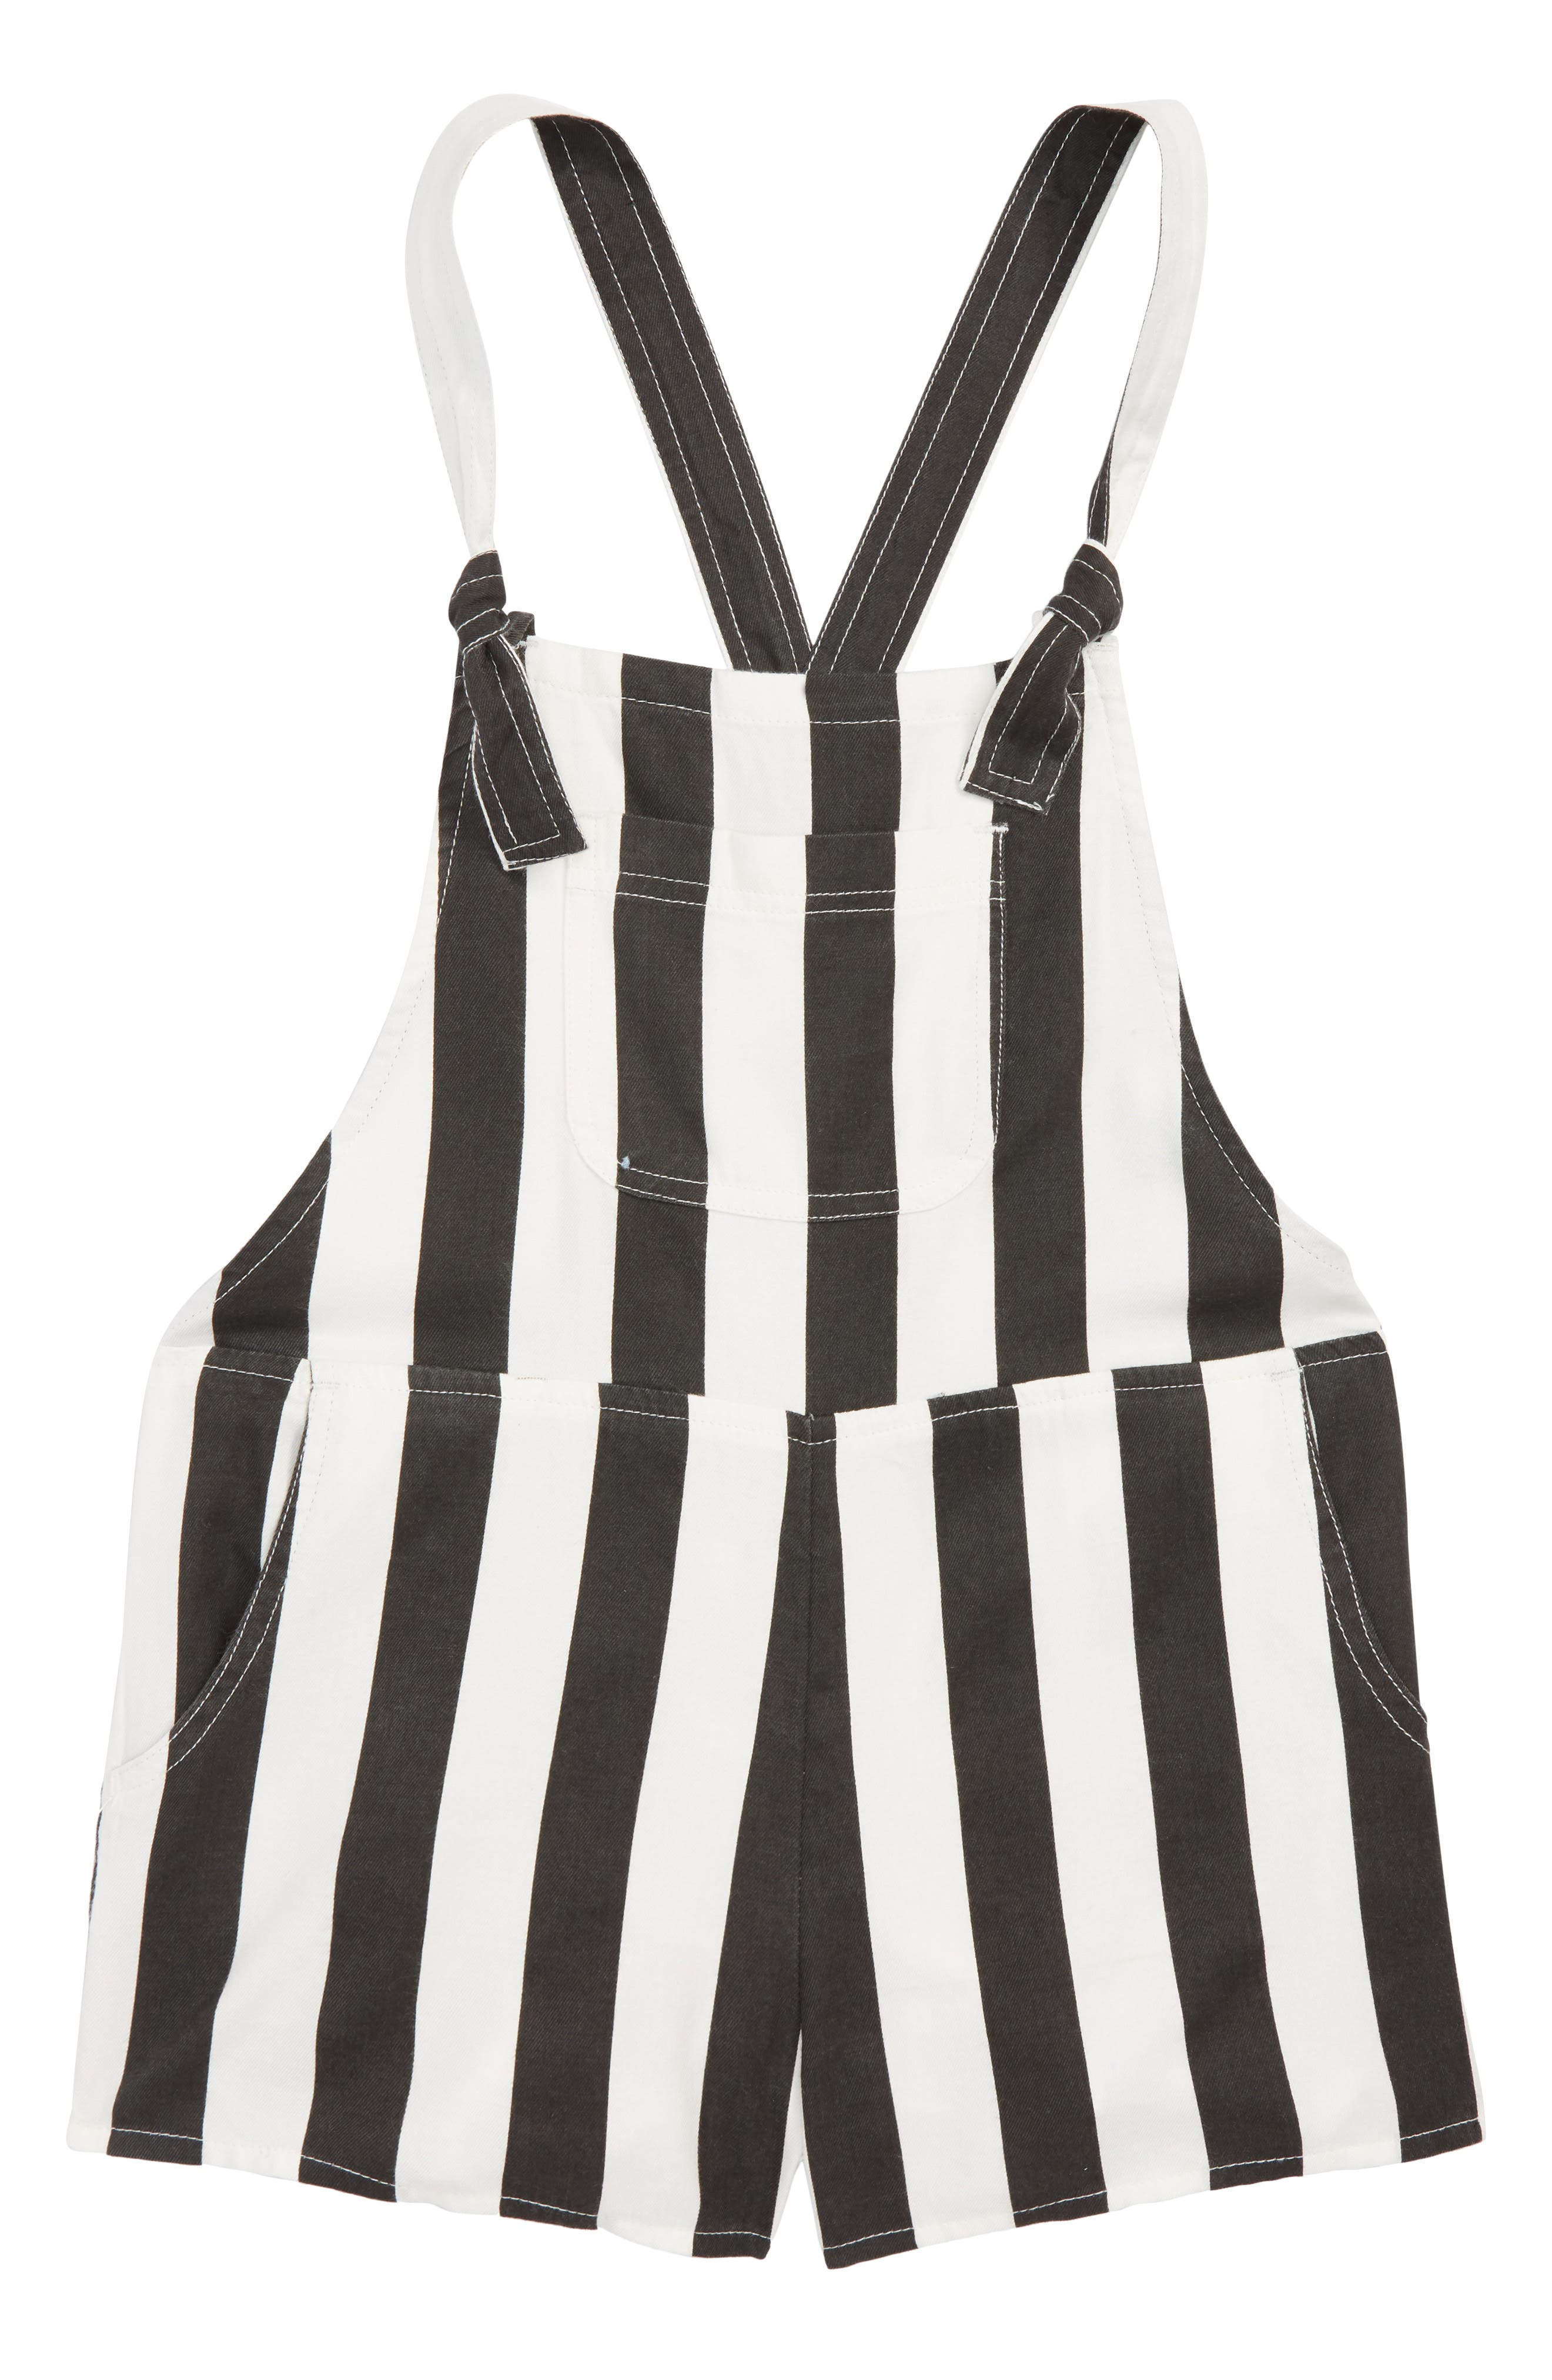 Roamin Stripe Short Overalls,                         Main,                         color, 001